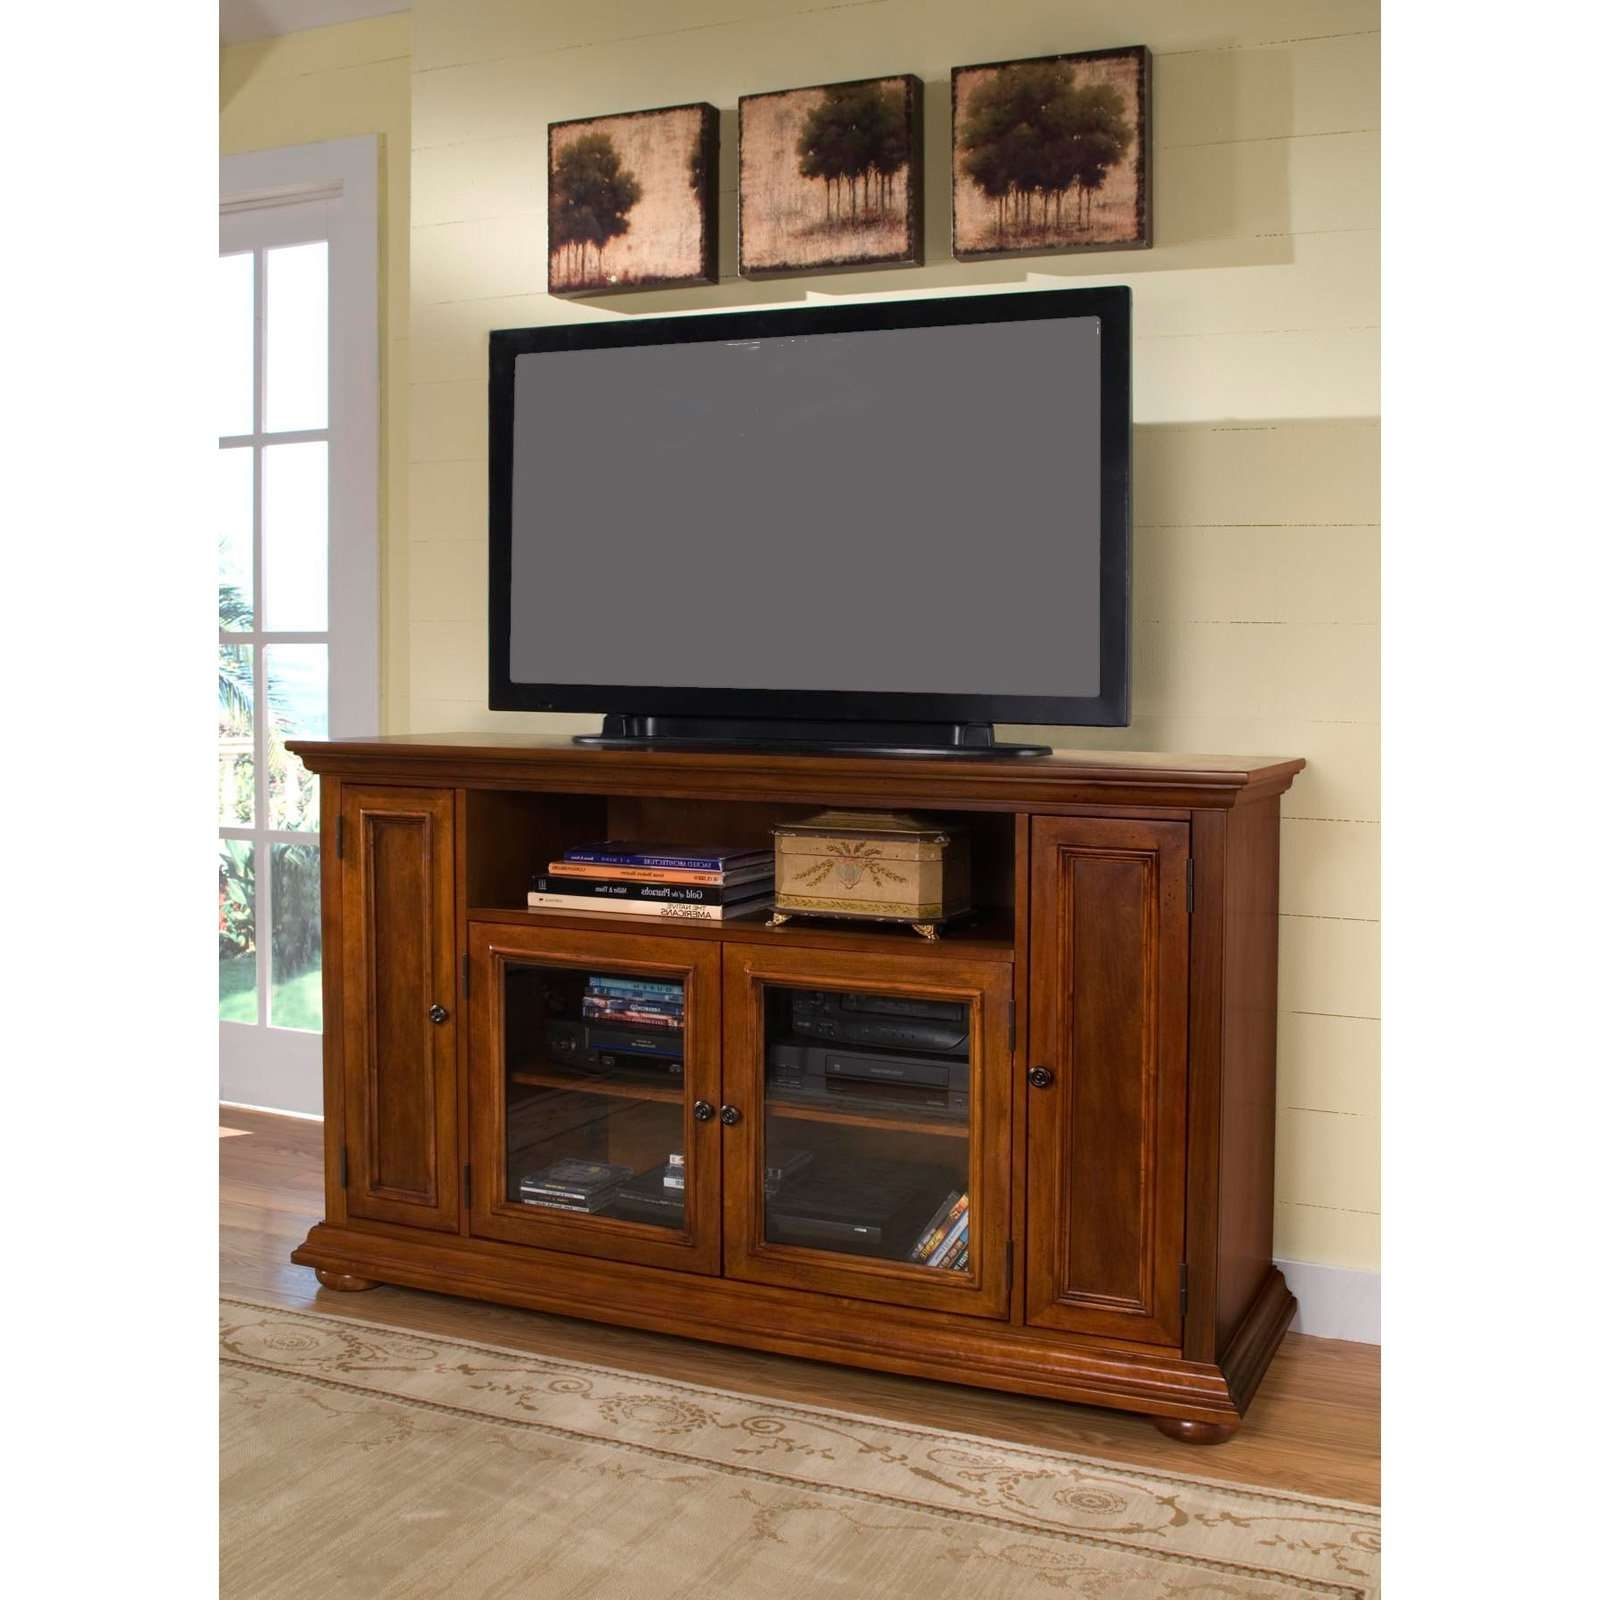 Tv Wall Cabinets For Flat Screens 20 Best Collection Of Wall Mounted Tv Cabinets With Doors